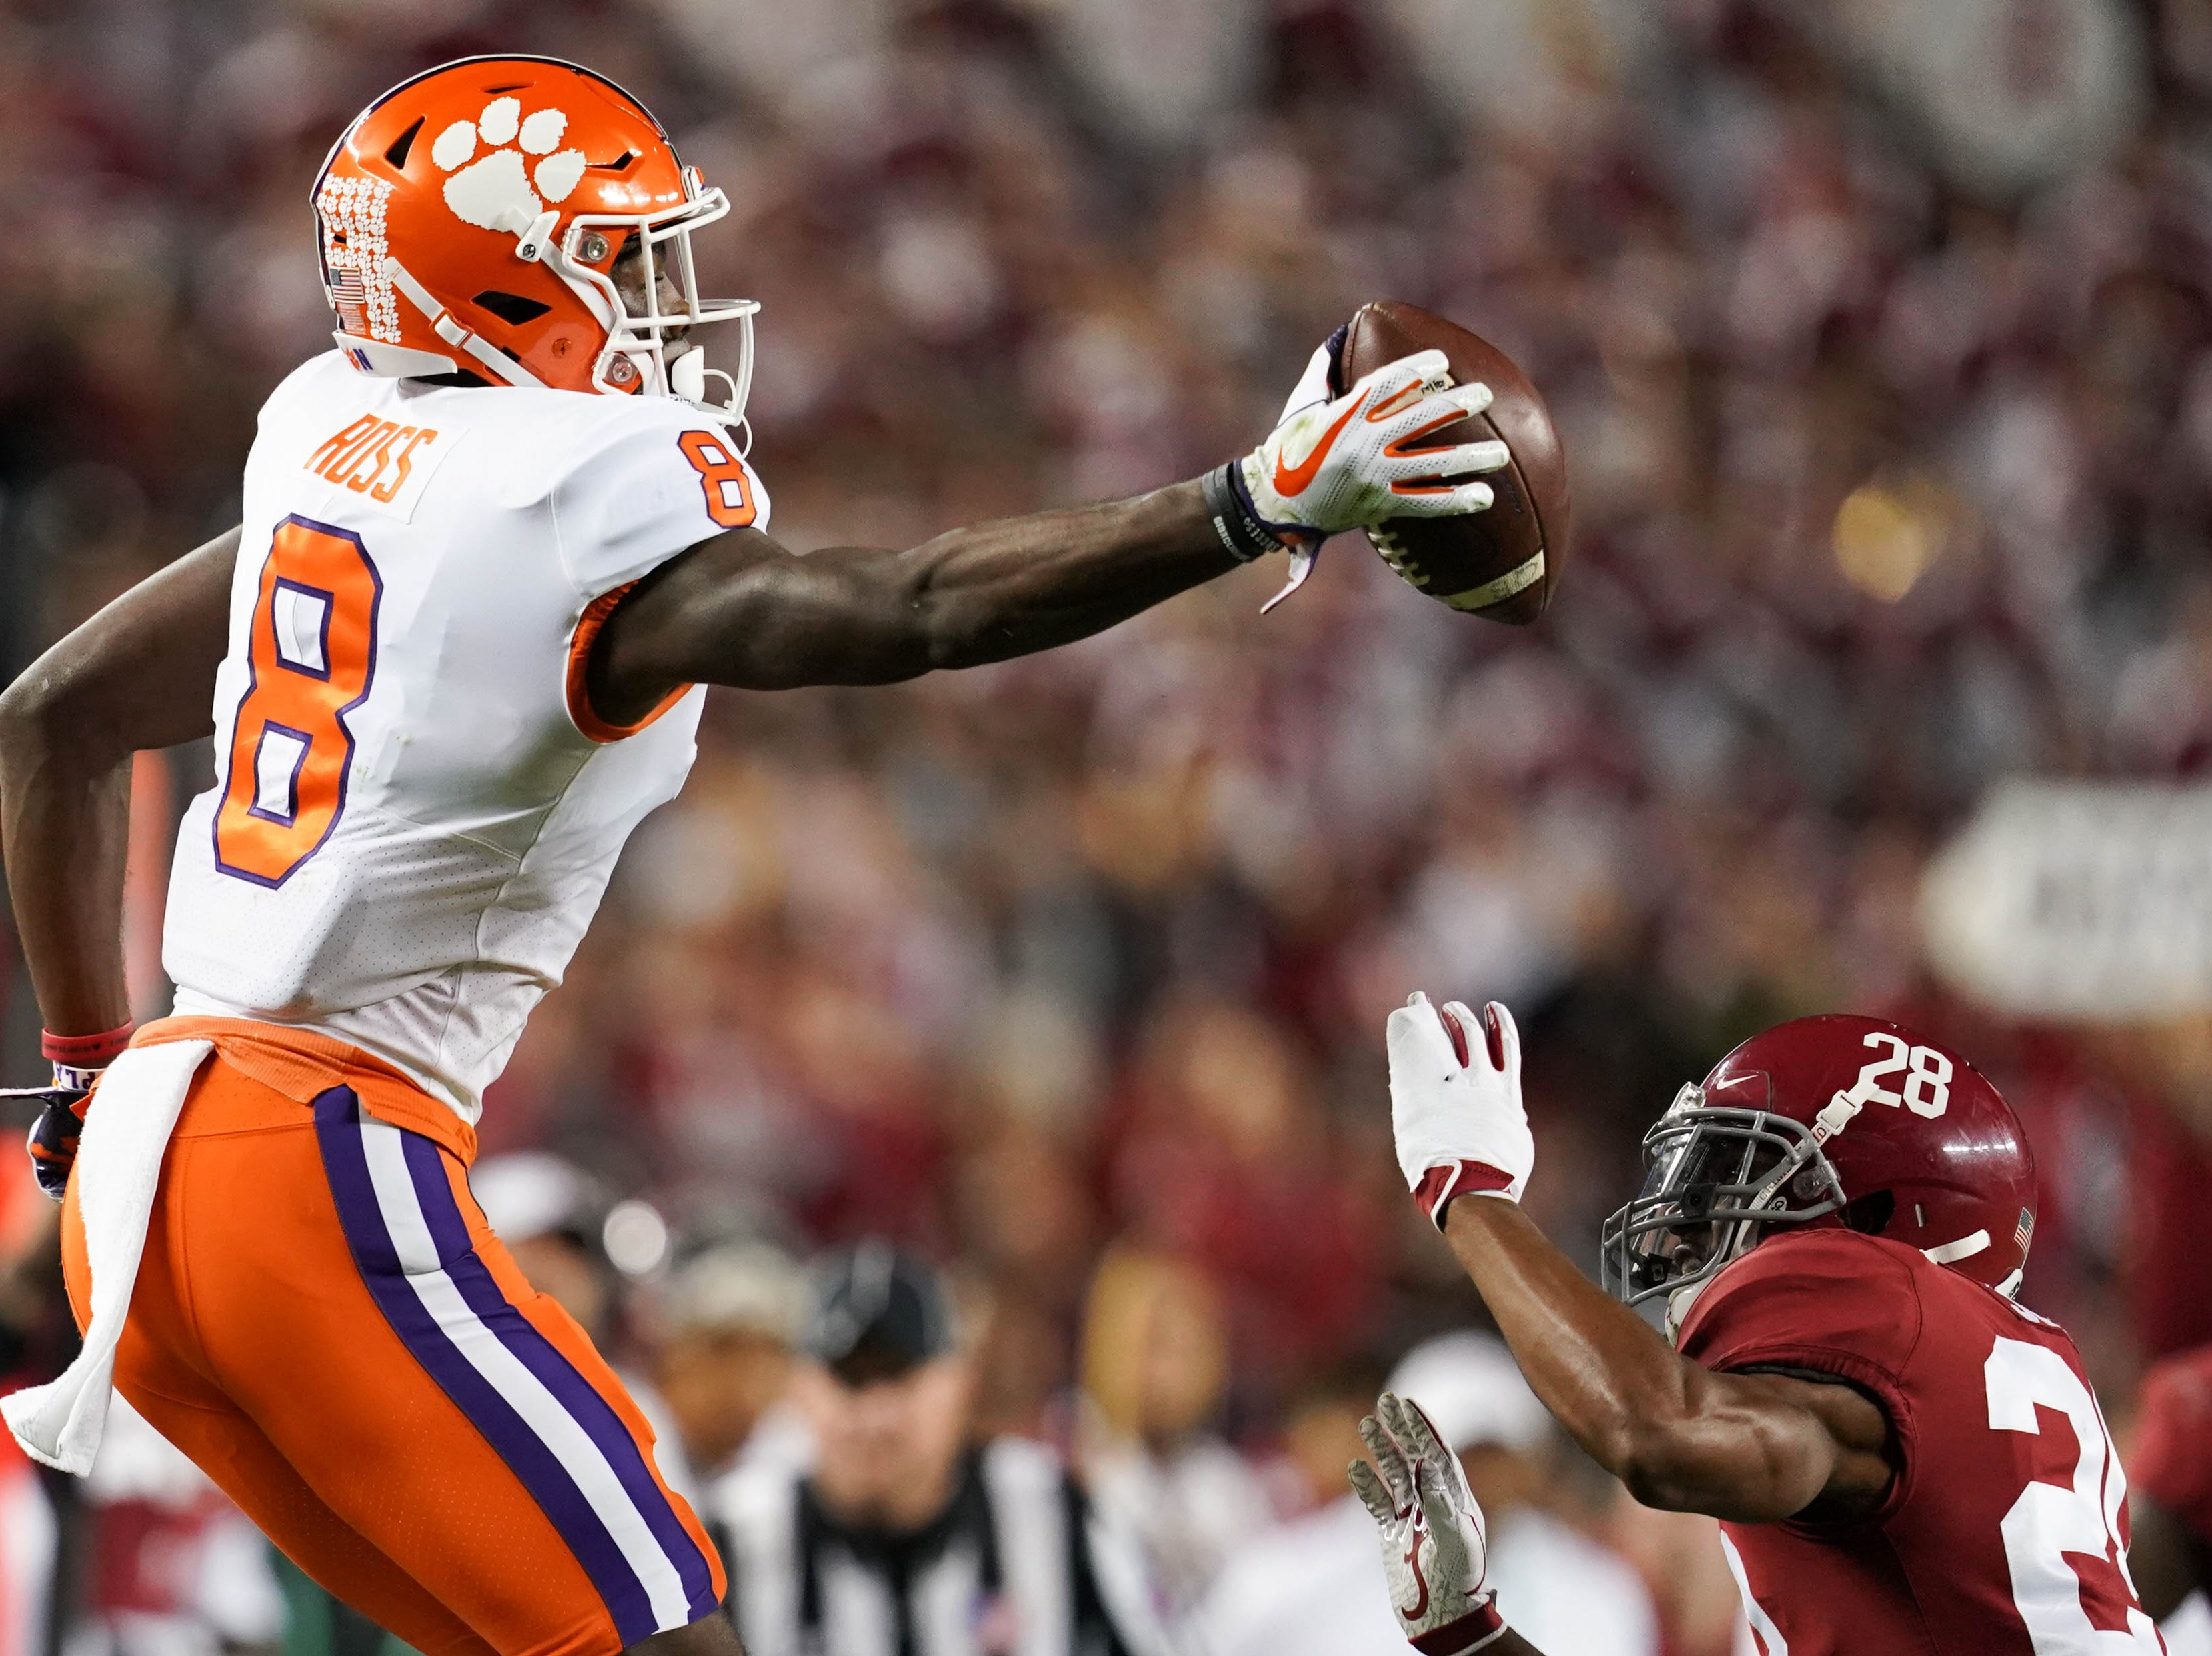 Jan 7, 2019; Santa Clara, CA, USA; Clemson Tigers wide receiver Justyn Ross (8) makes a catch ahead of Alabama Crimson Tide defensive back Josh Jobe (28) during the third quarter in the 2019 College Football Playoff Championship game at Levi's Stadium. Mandatory Credit: Kyle Terada-USA TODAY Sports